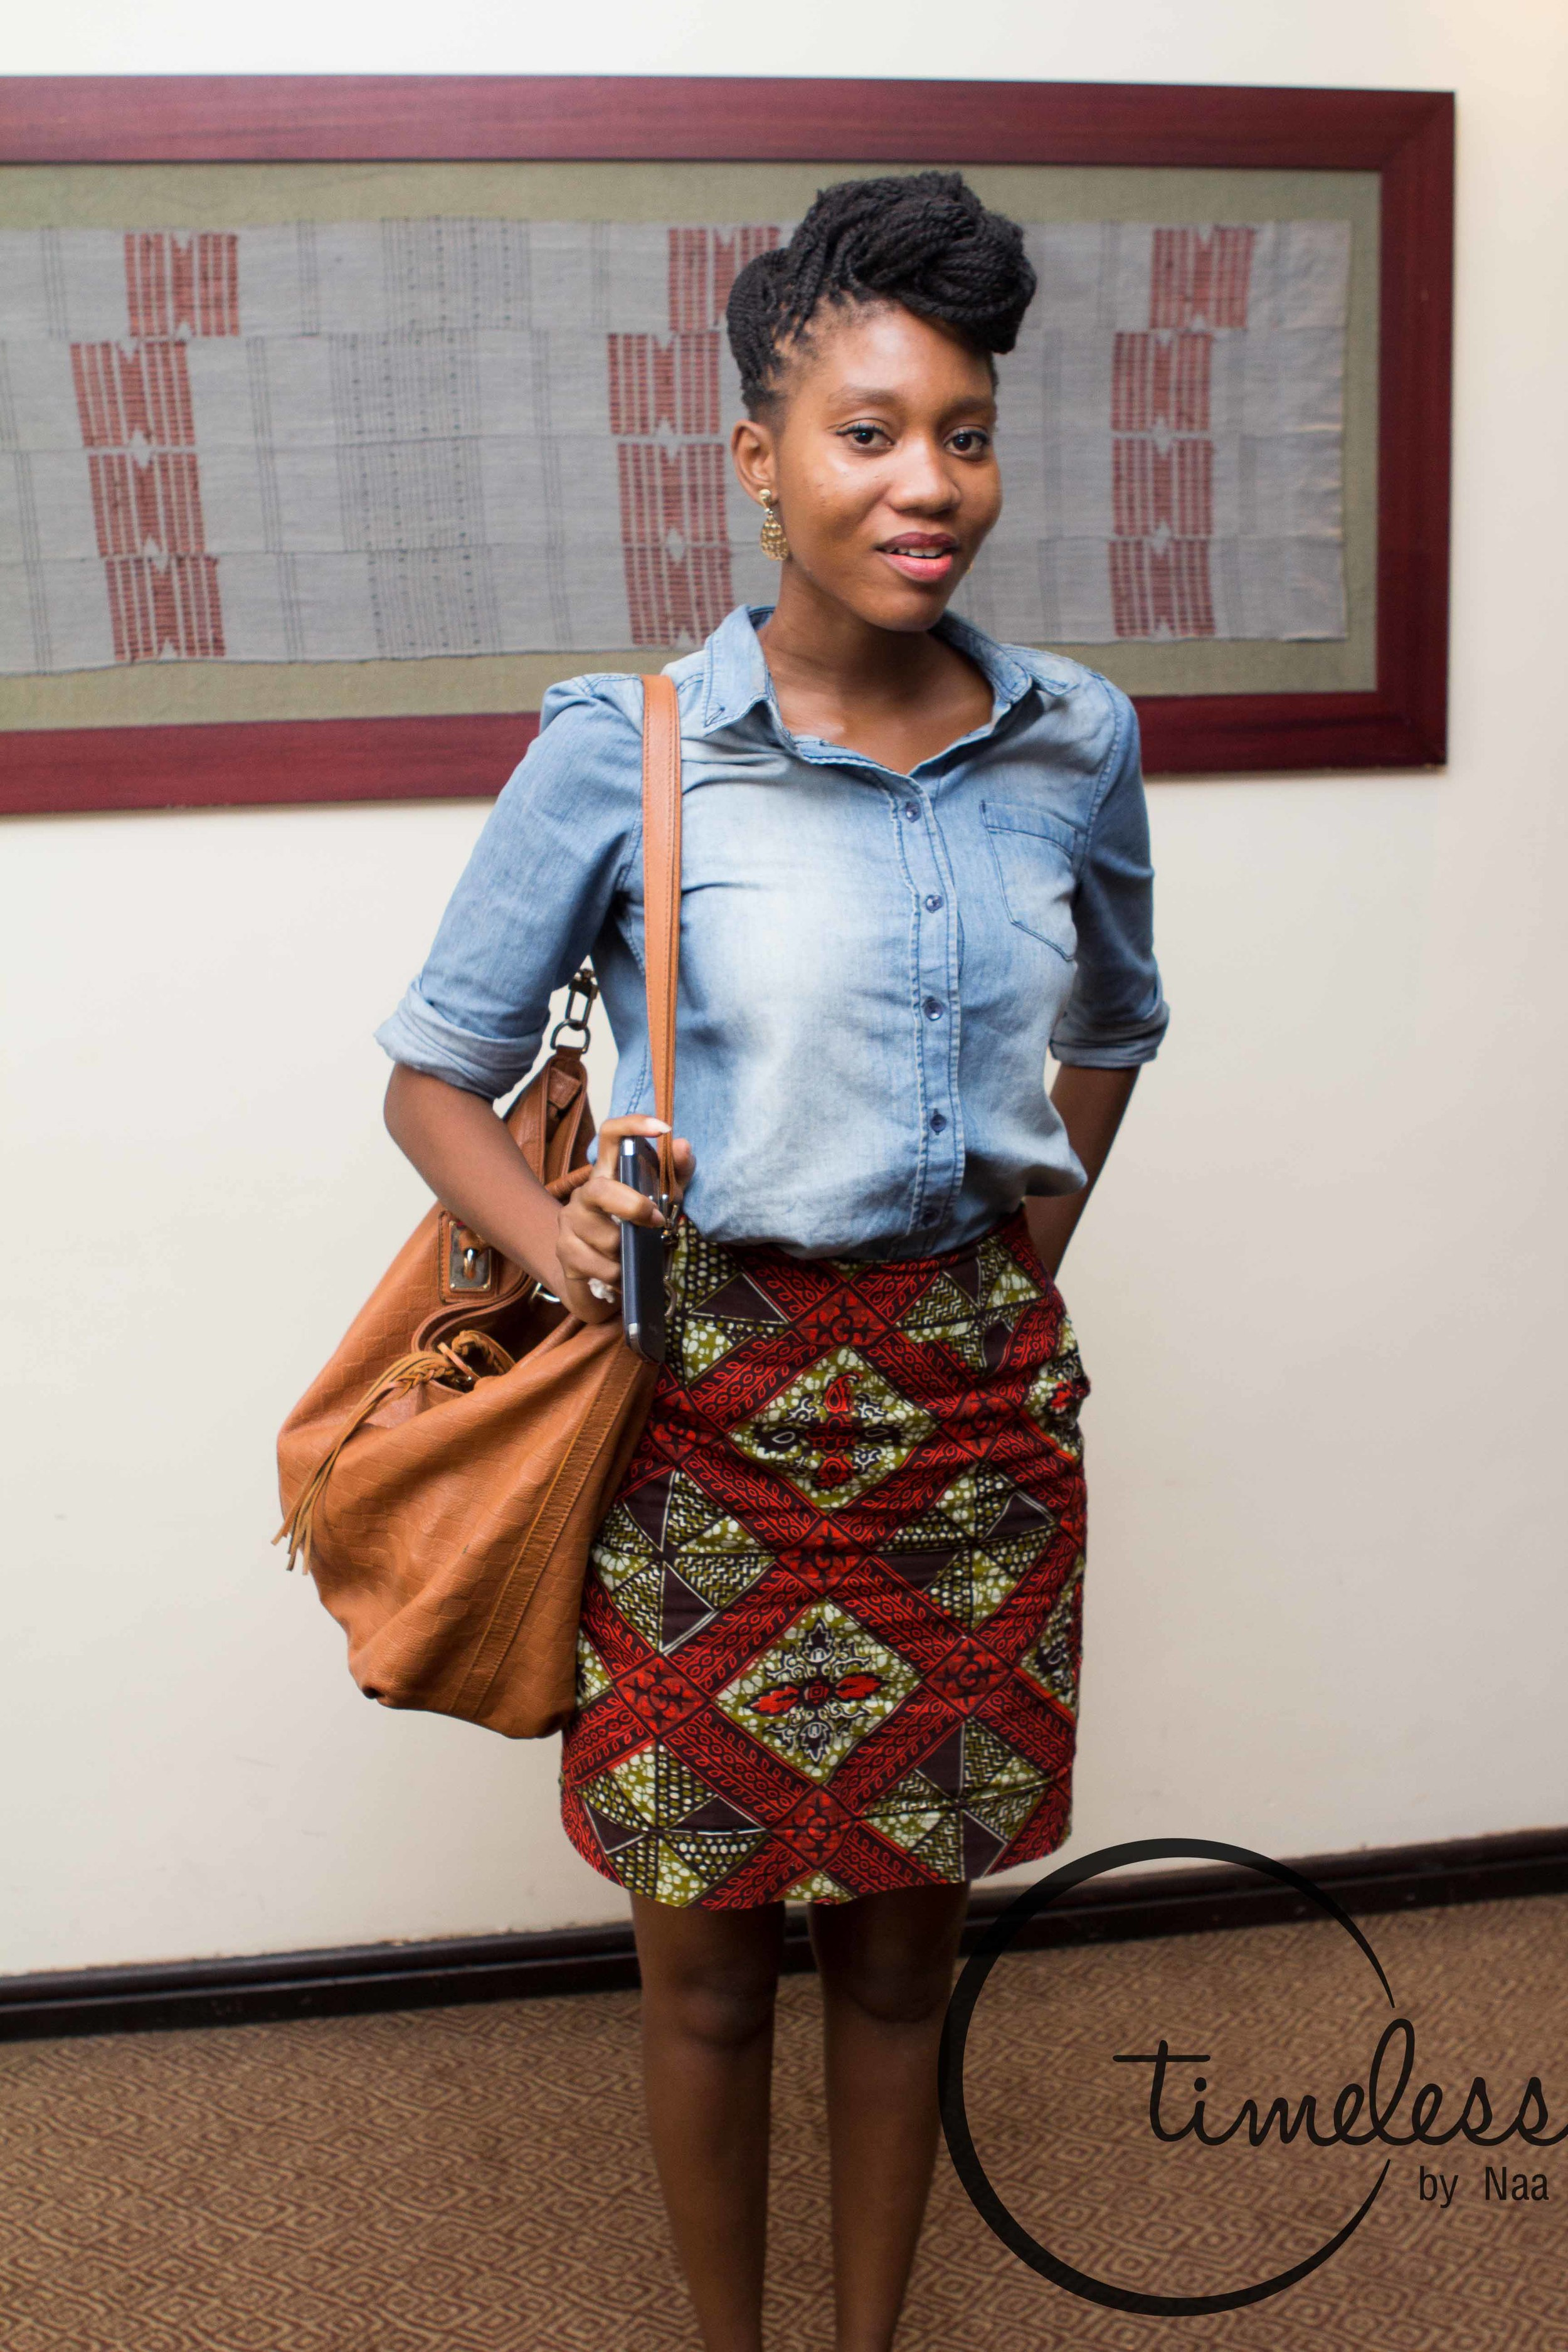 Jeans shirt with bold patterned African print skirt